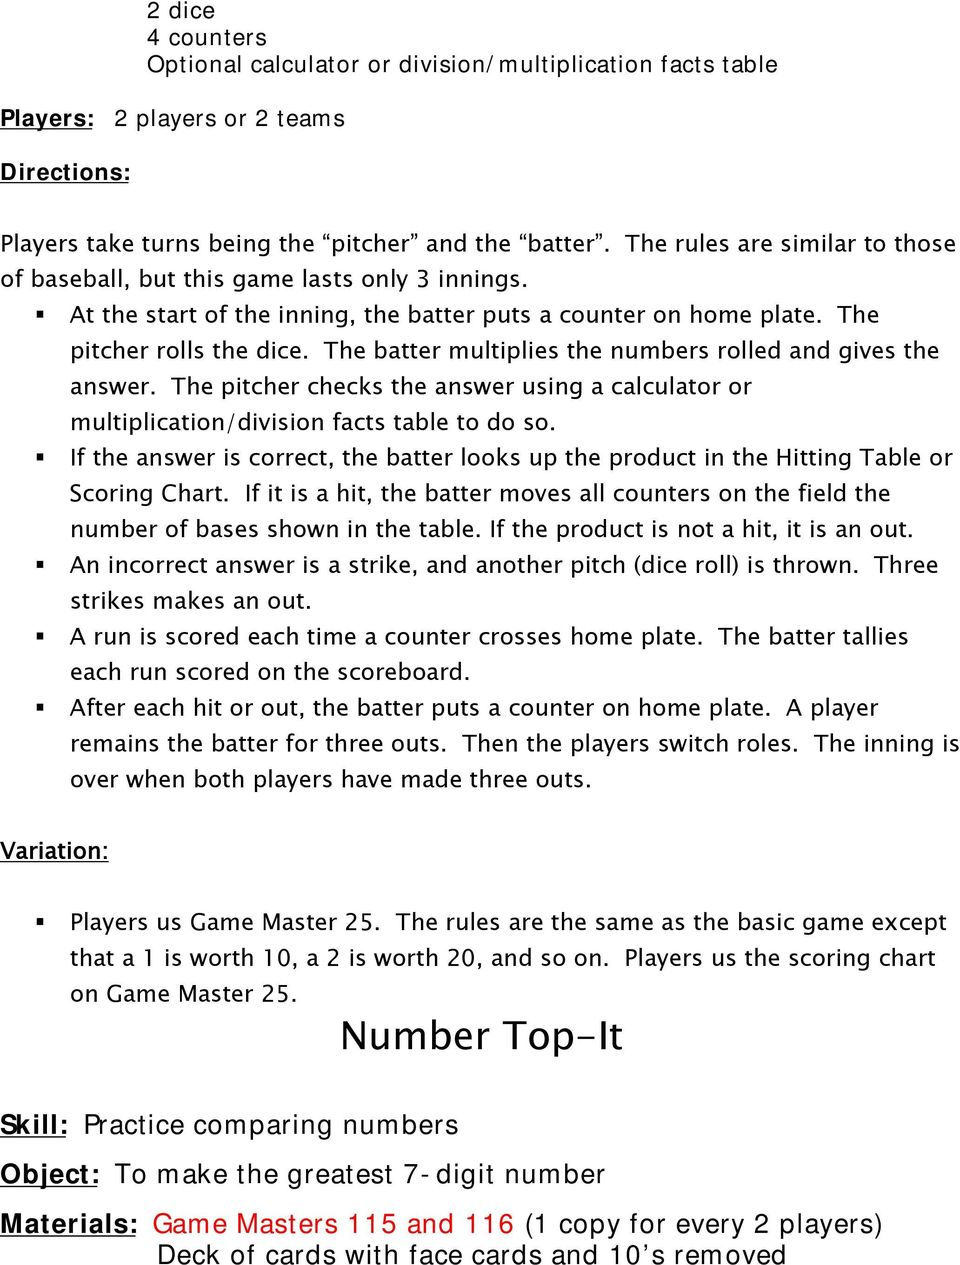 The batter multiplies the numbers rolled and gives the answer. The pitcher checks the answer using a calculator or multiplication/division facts table to do so.